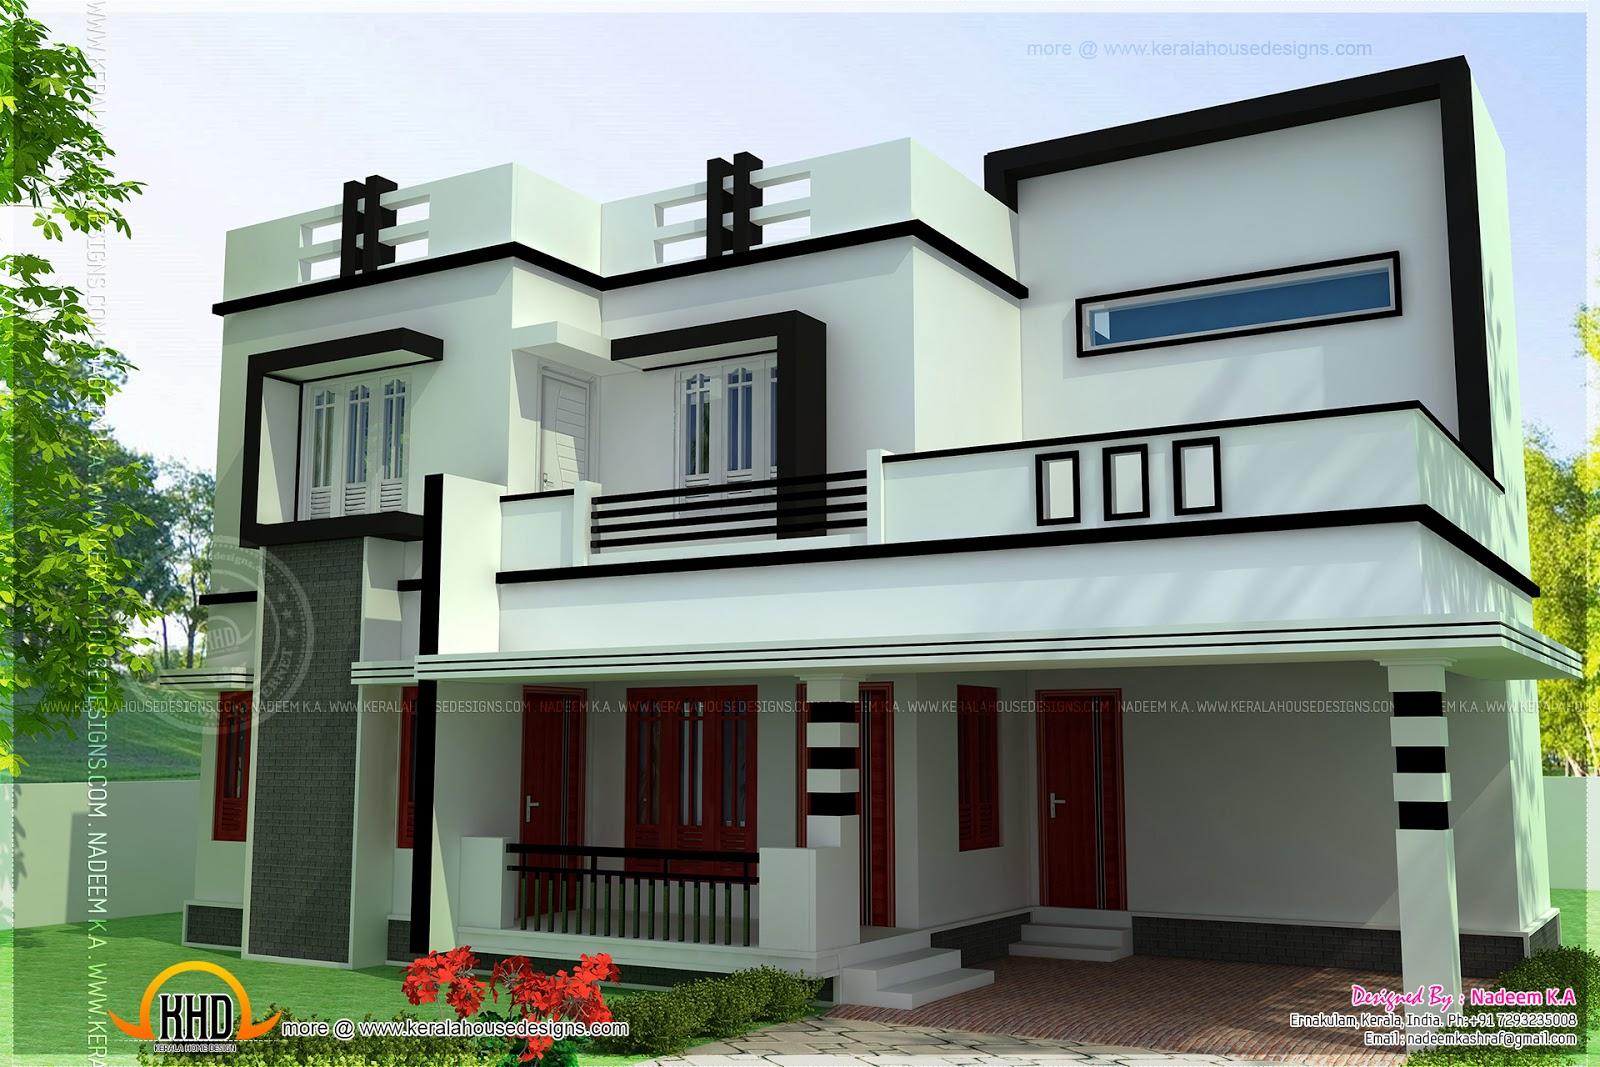 Flat roof 4 bedroom modern house kerala home design and for Home design 6